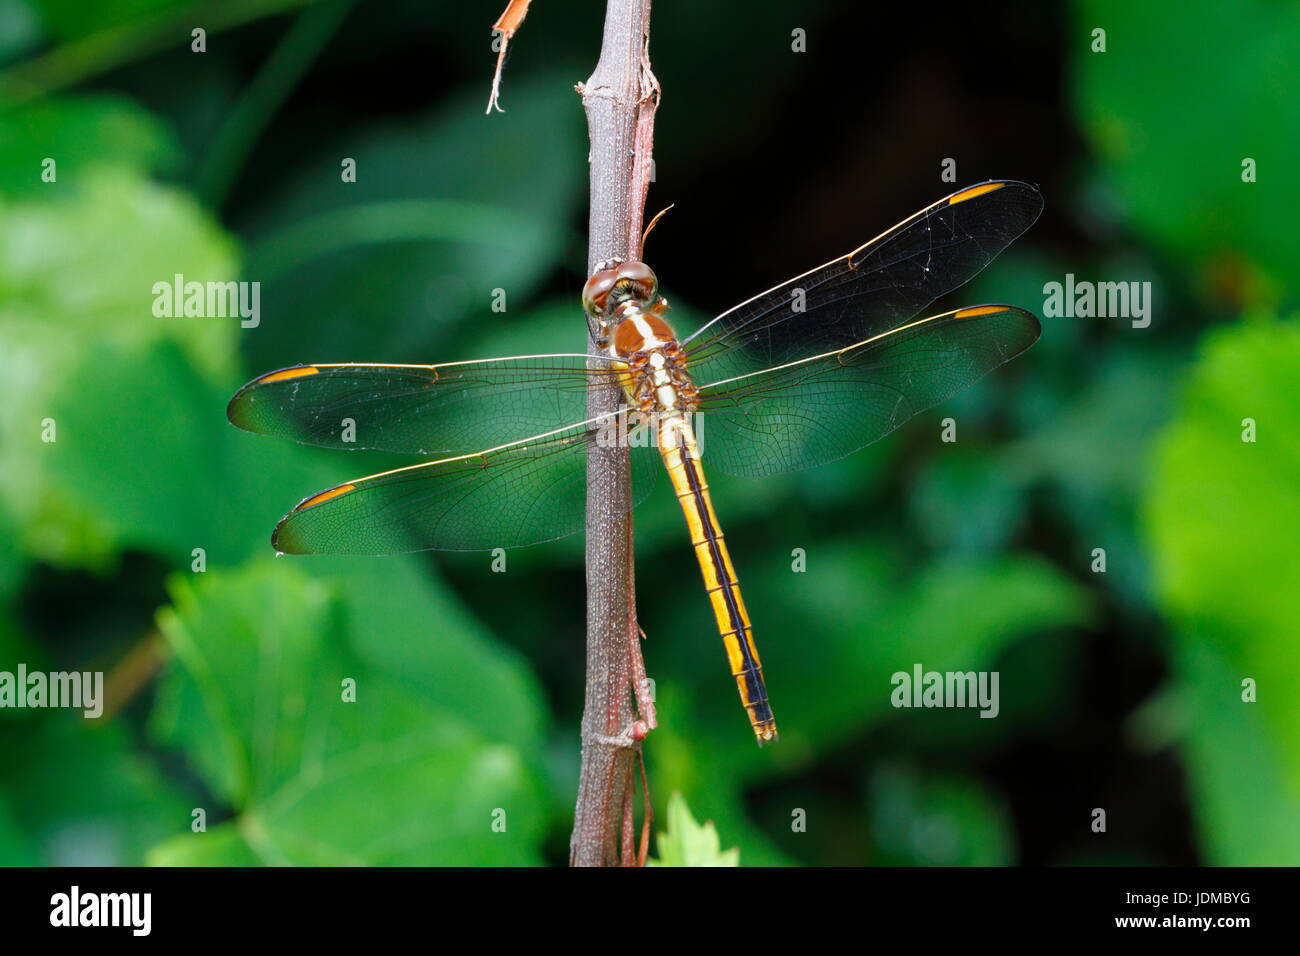 A needham's skimmer, Libellula needhami, at rest on a twig. - Stock Image